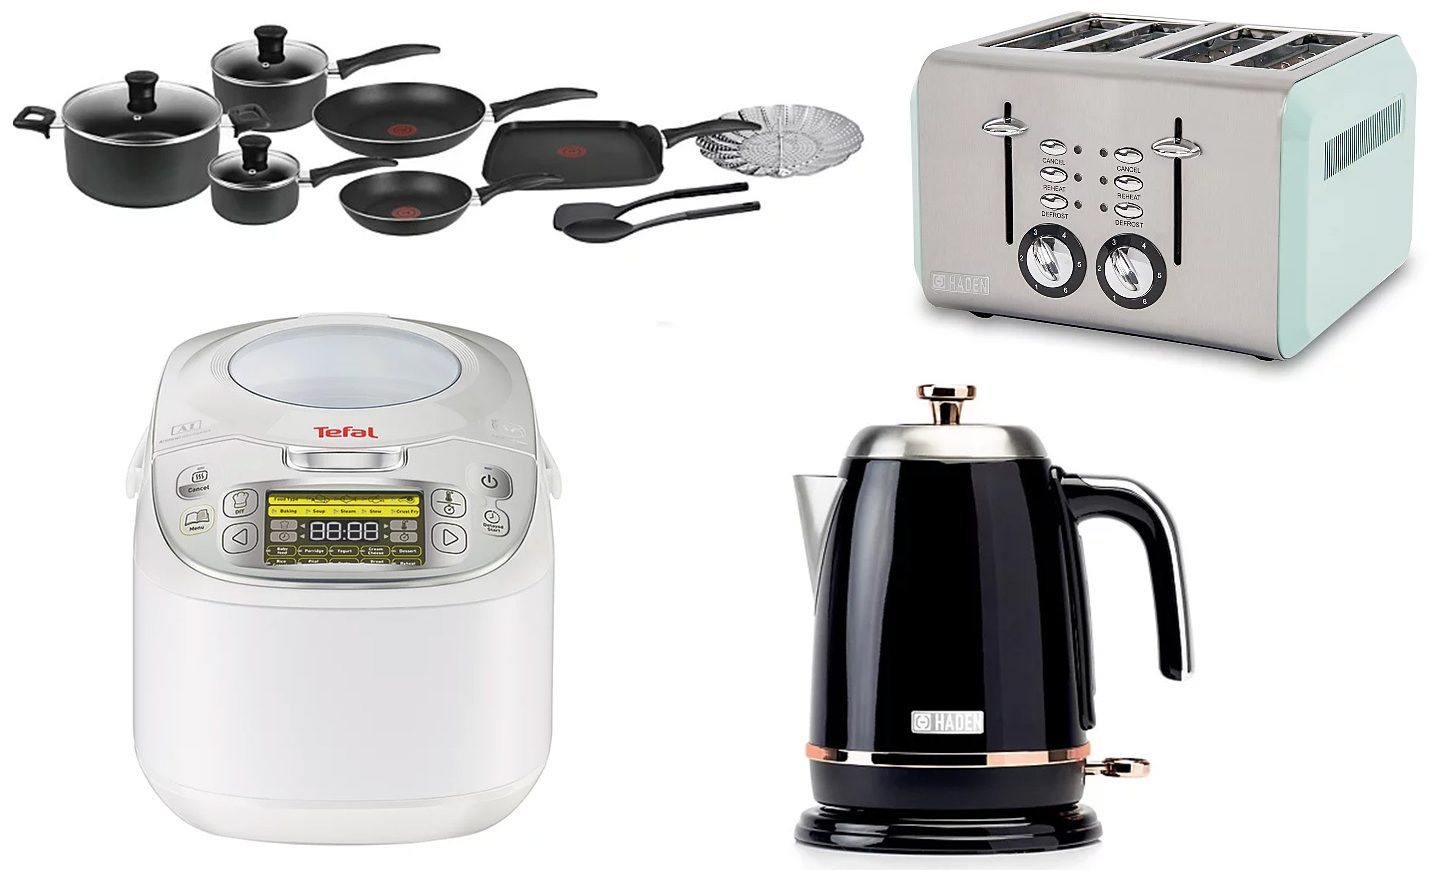 Asda slashed prices across a range of different tech and kitchenware products